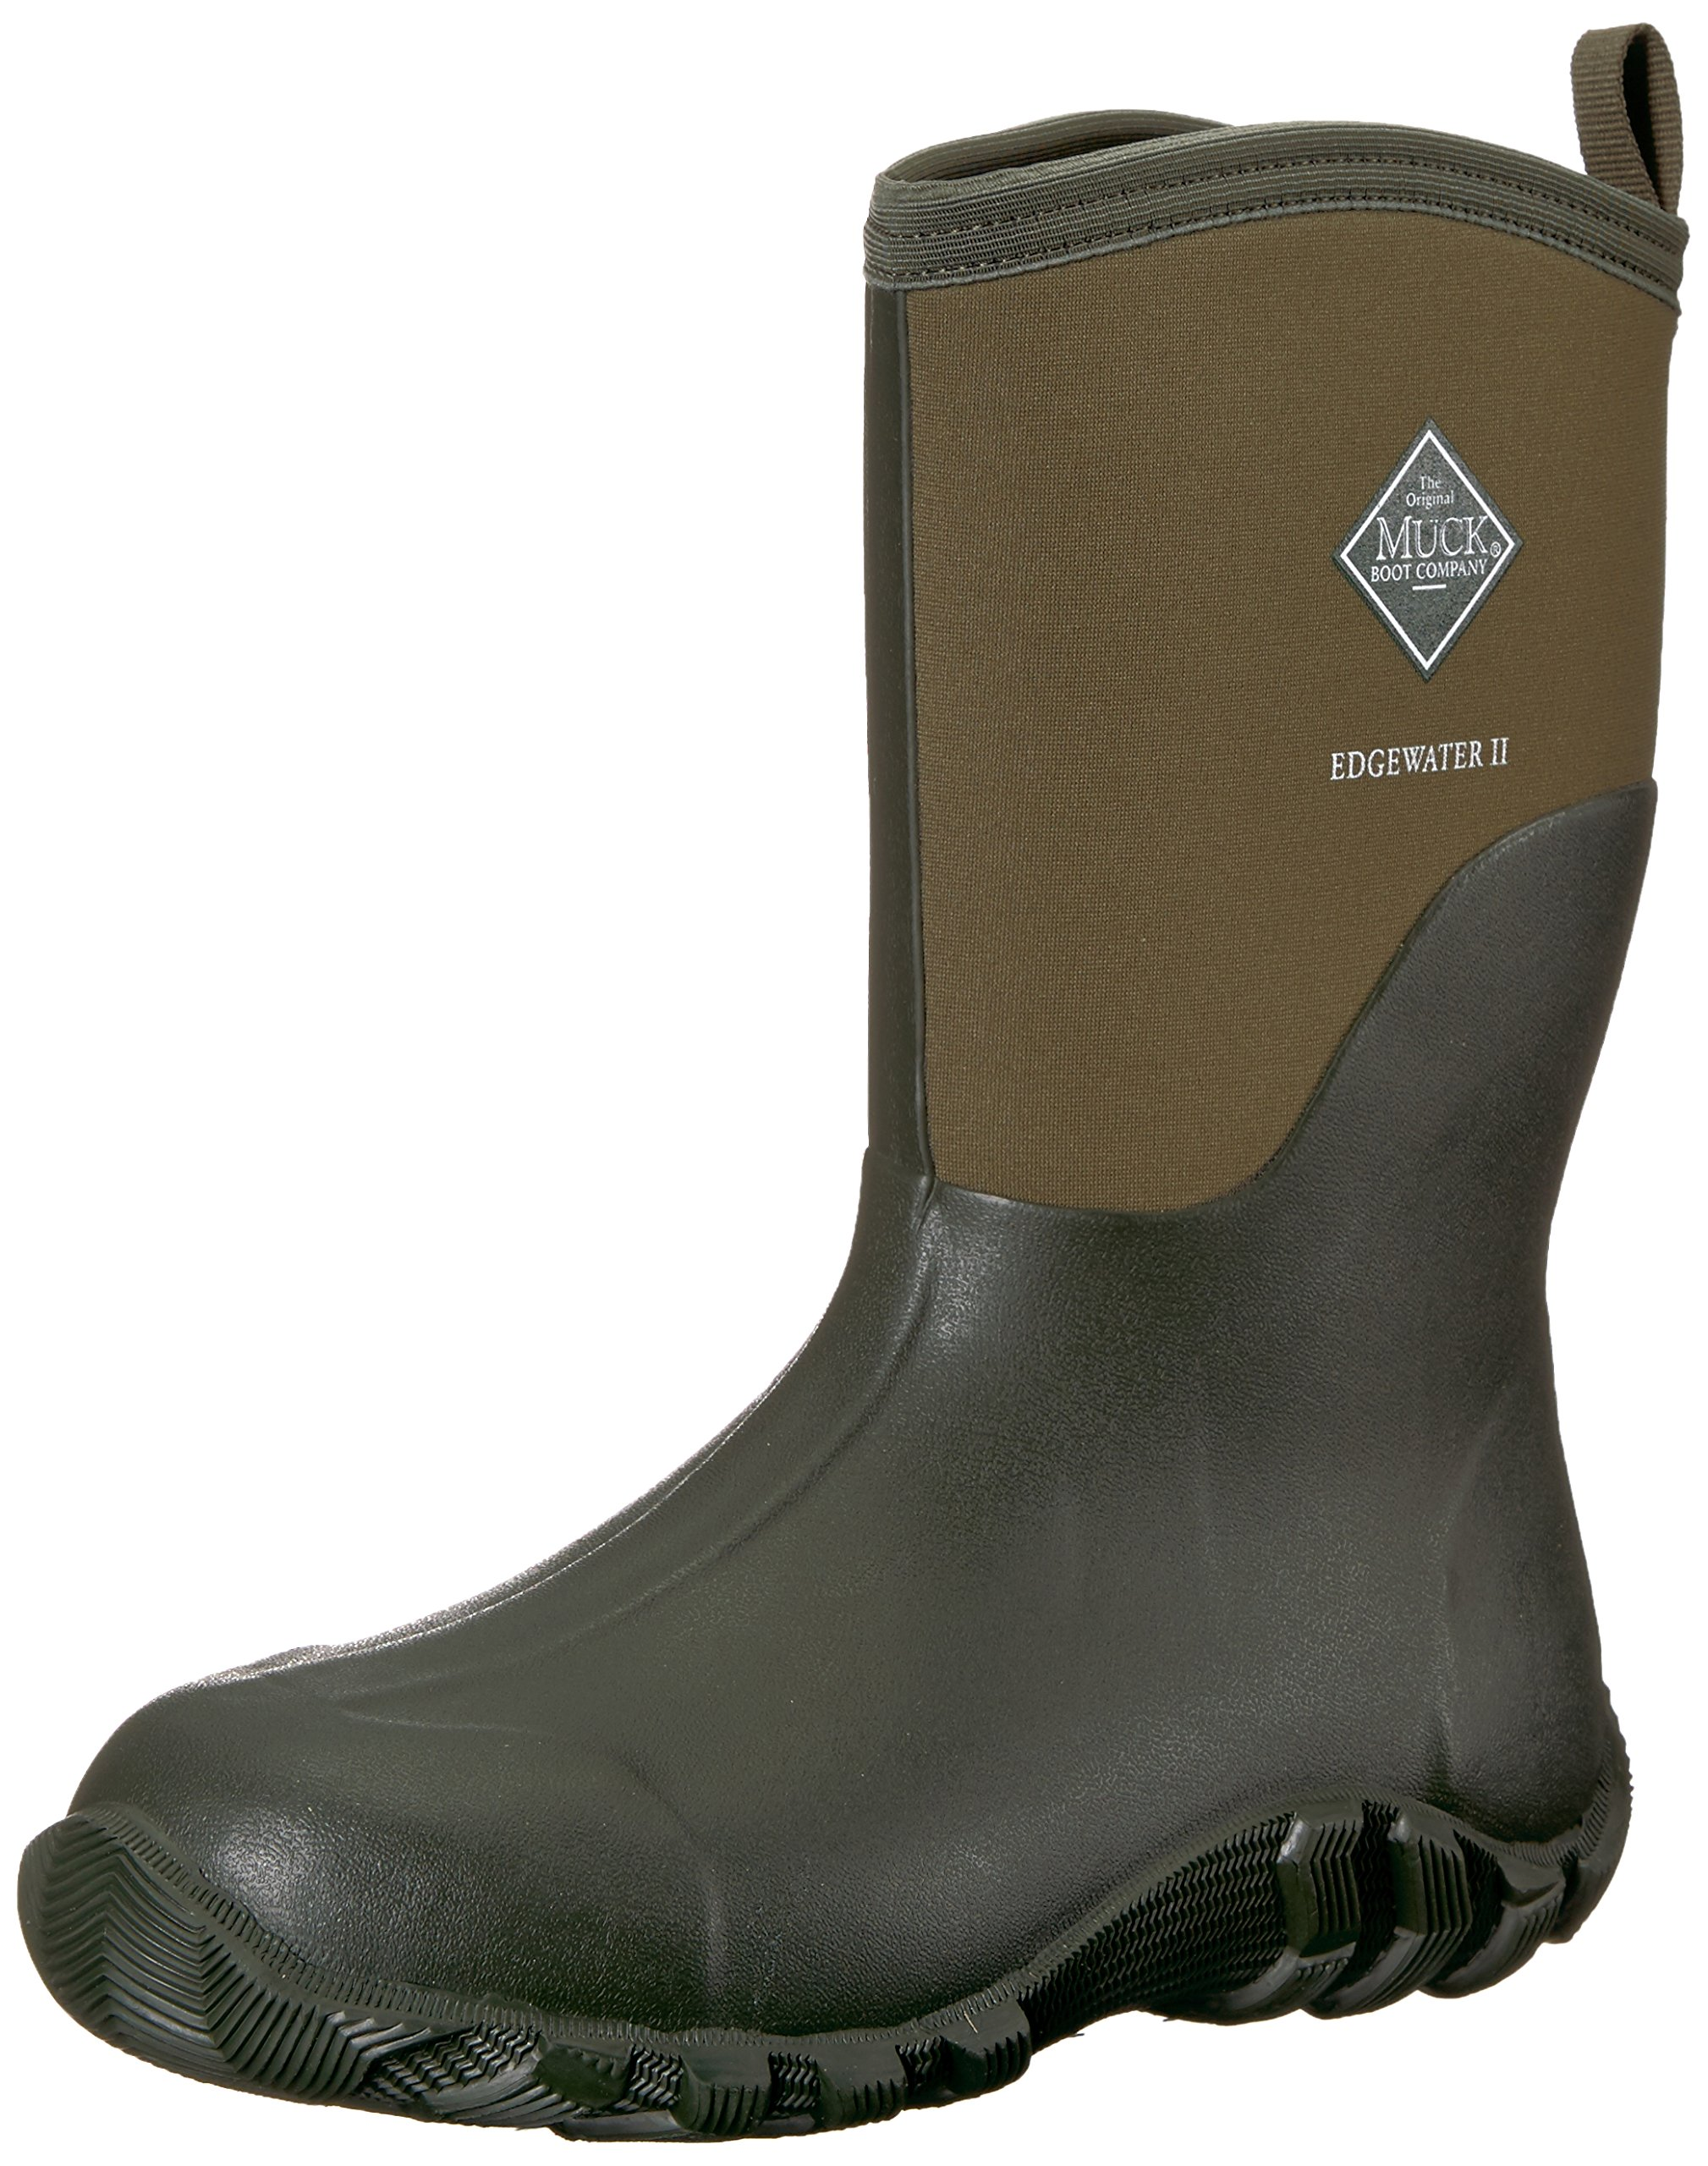 Muck Edgewater ll Multi-Purpose Mid-Height Men's Rubber Boots by Muck Boot